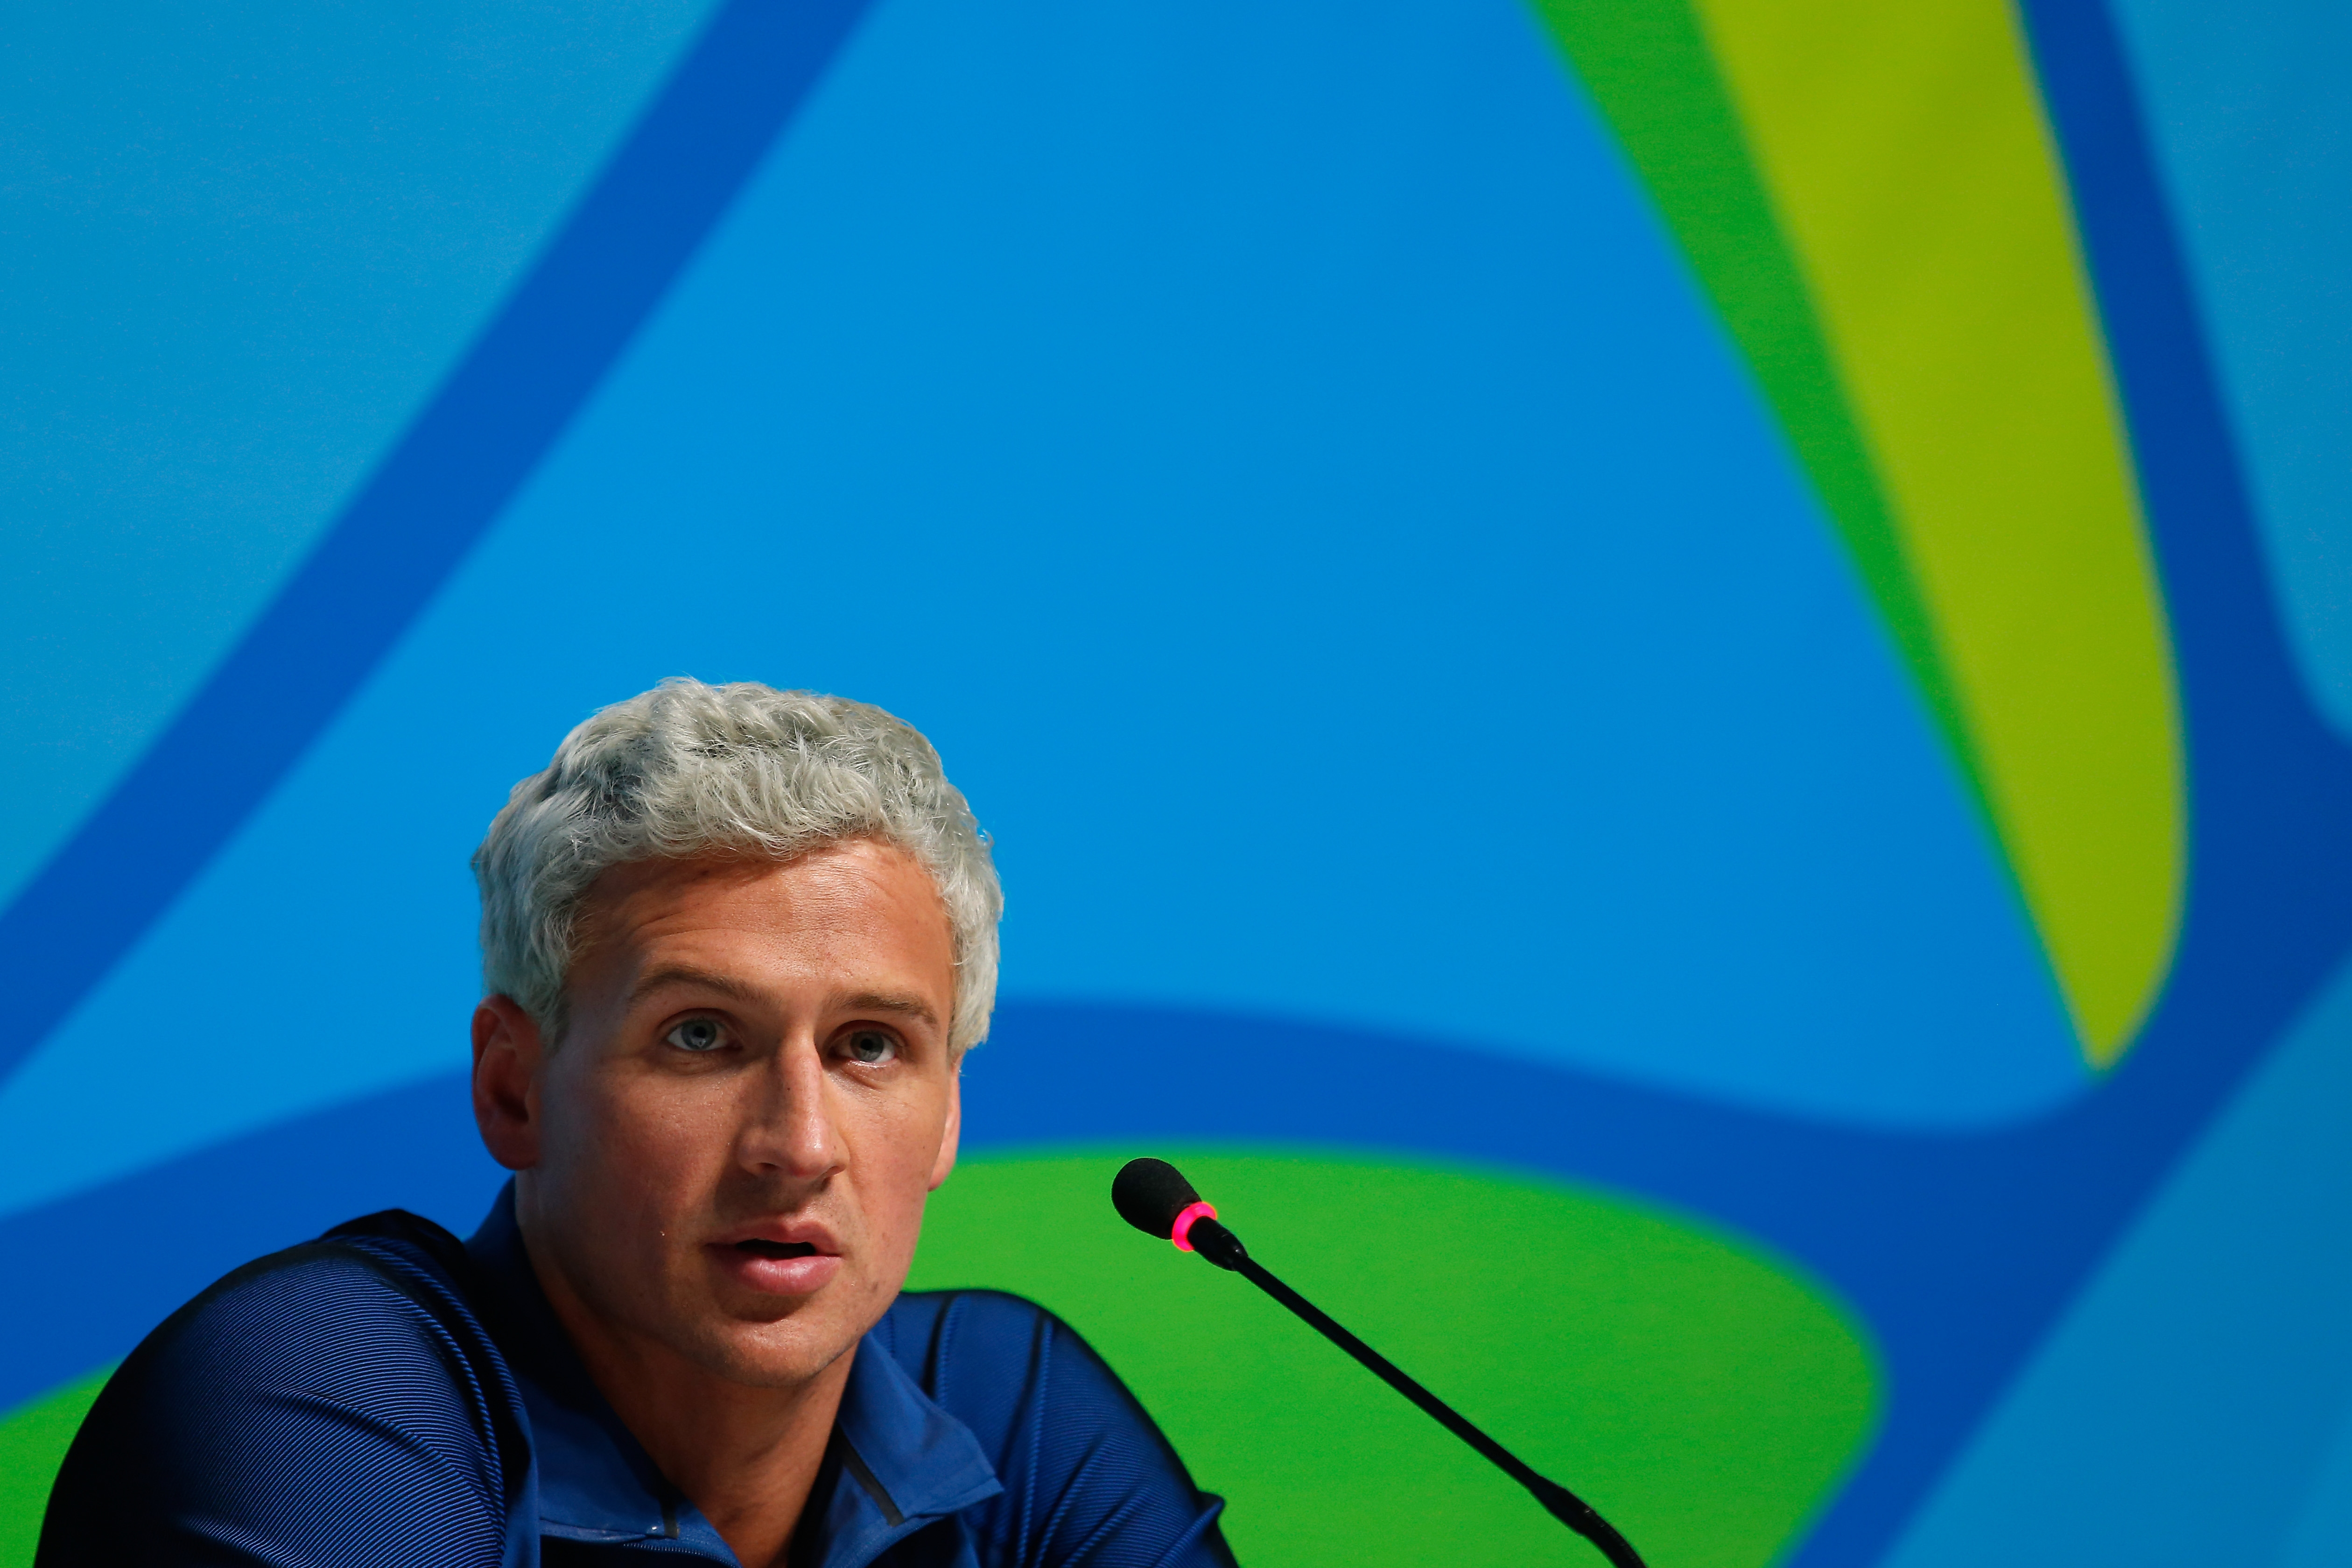 Power Take: Can't blame Rio for problems caused by Lochte and others